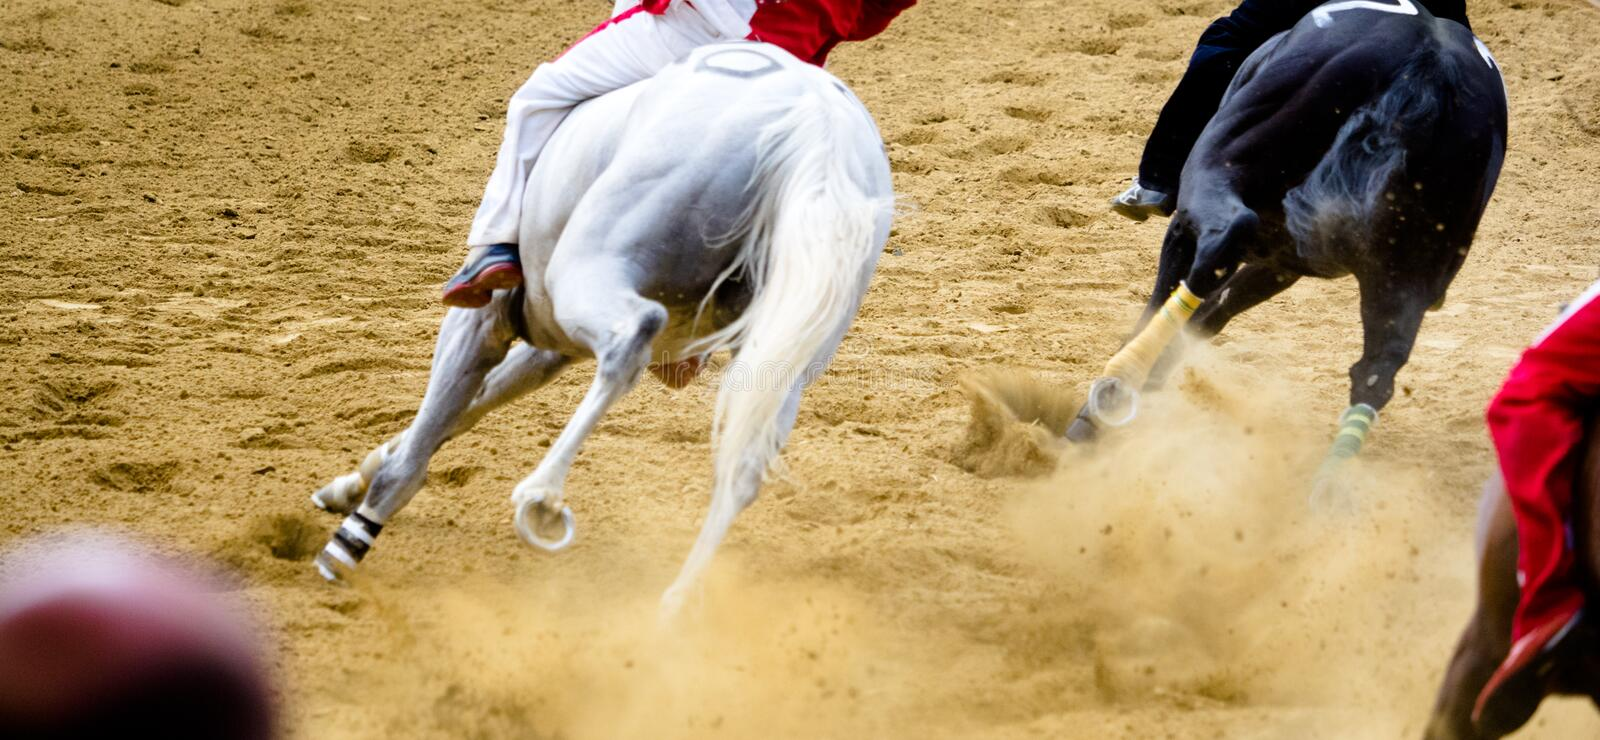 Palio di Asti horse racing details of galloping horses legs on hippodrome royalty free stock image